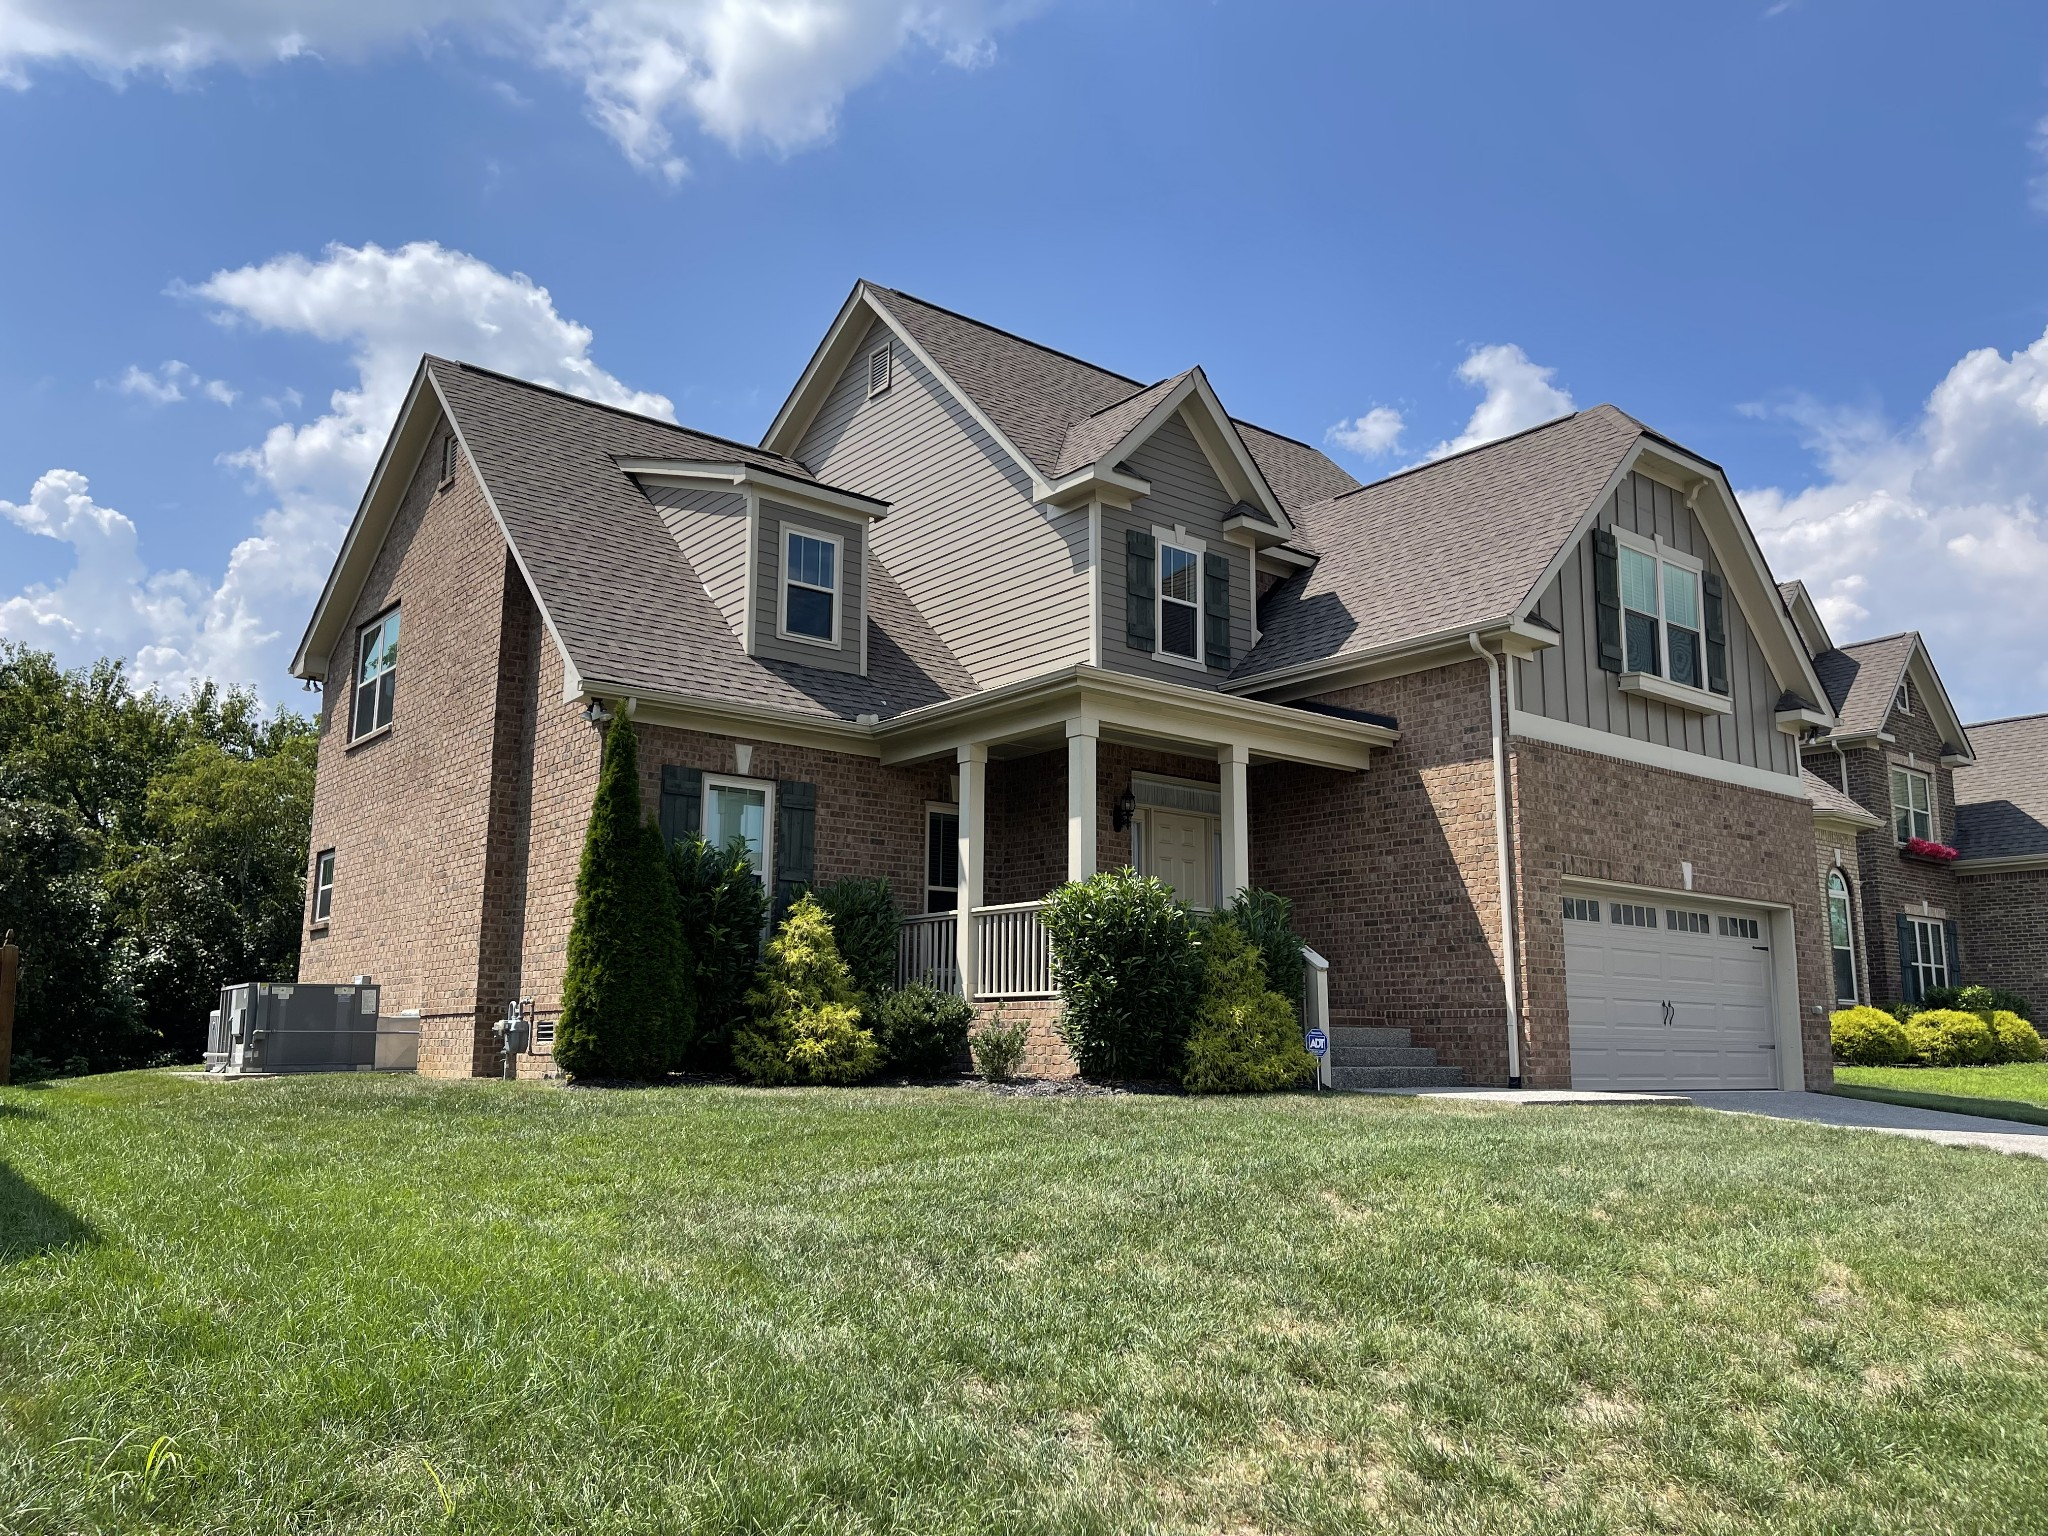 Beautiful all brick home in Wades Grove, boasts open floor plan with lots of custom finishes by John Maher homes. White cabinets, hardwood floors, floor to ceiling stone fireplace. Home was built in 2016 - brand new carpet installed. This home backs to trees and has a flat back yard, previous homeowner had a retention wall and fill dirt for a usable back yard. Professional photos coming soon. Offers due by Sunday 8:00 pm - Seller to make a decision by Monday evening.